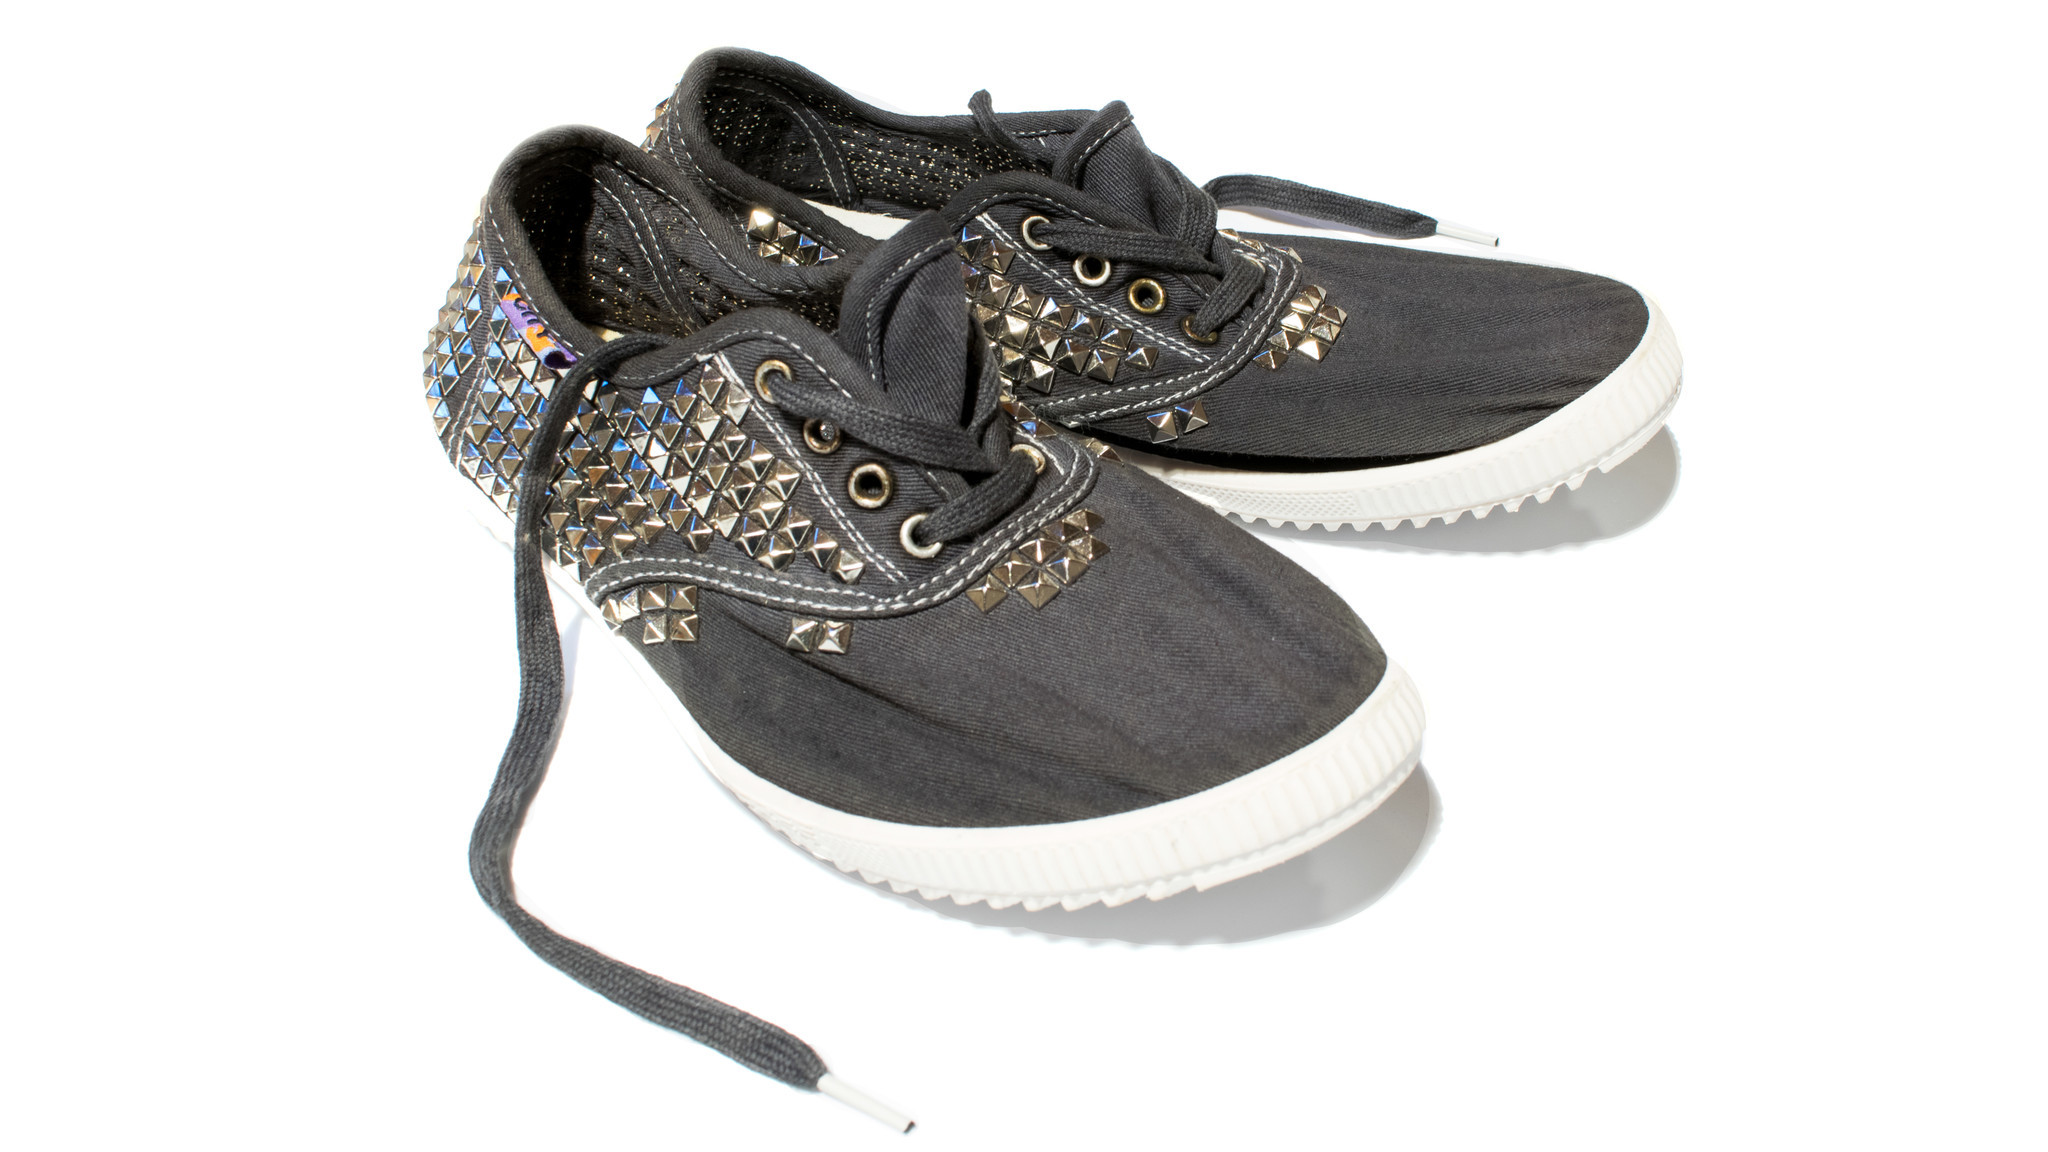 Free City Supercolor studded sneaker in magical poets grey